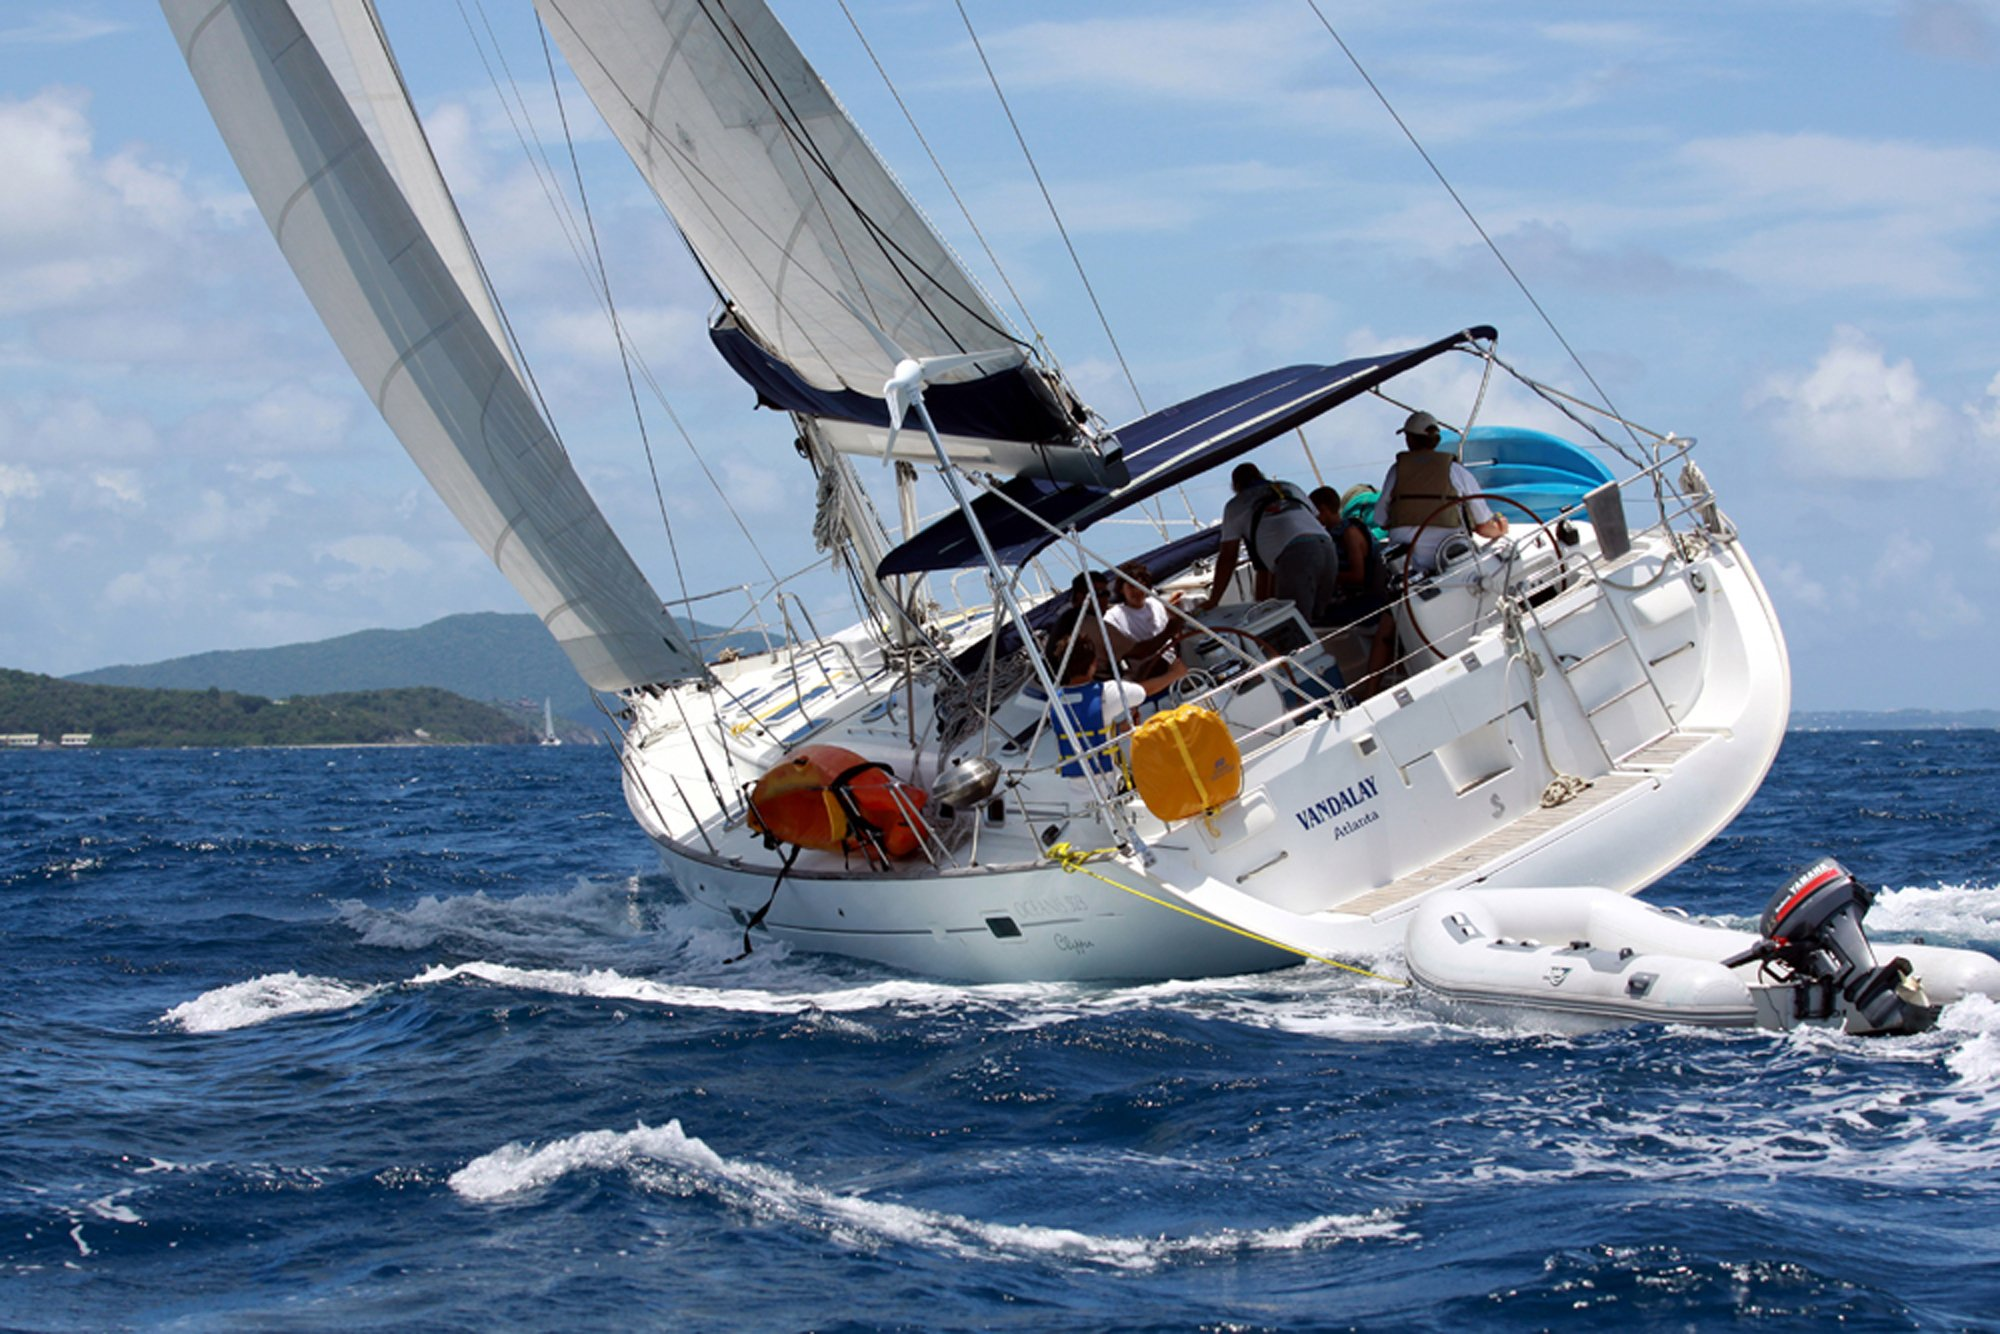 Bareboat Yacht Charters - Save Money With A Bareboat Charter